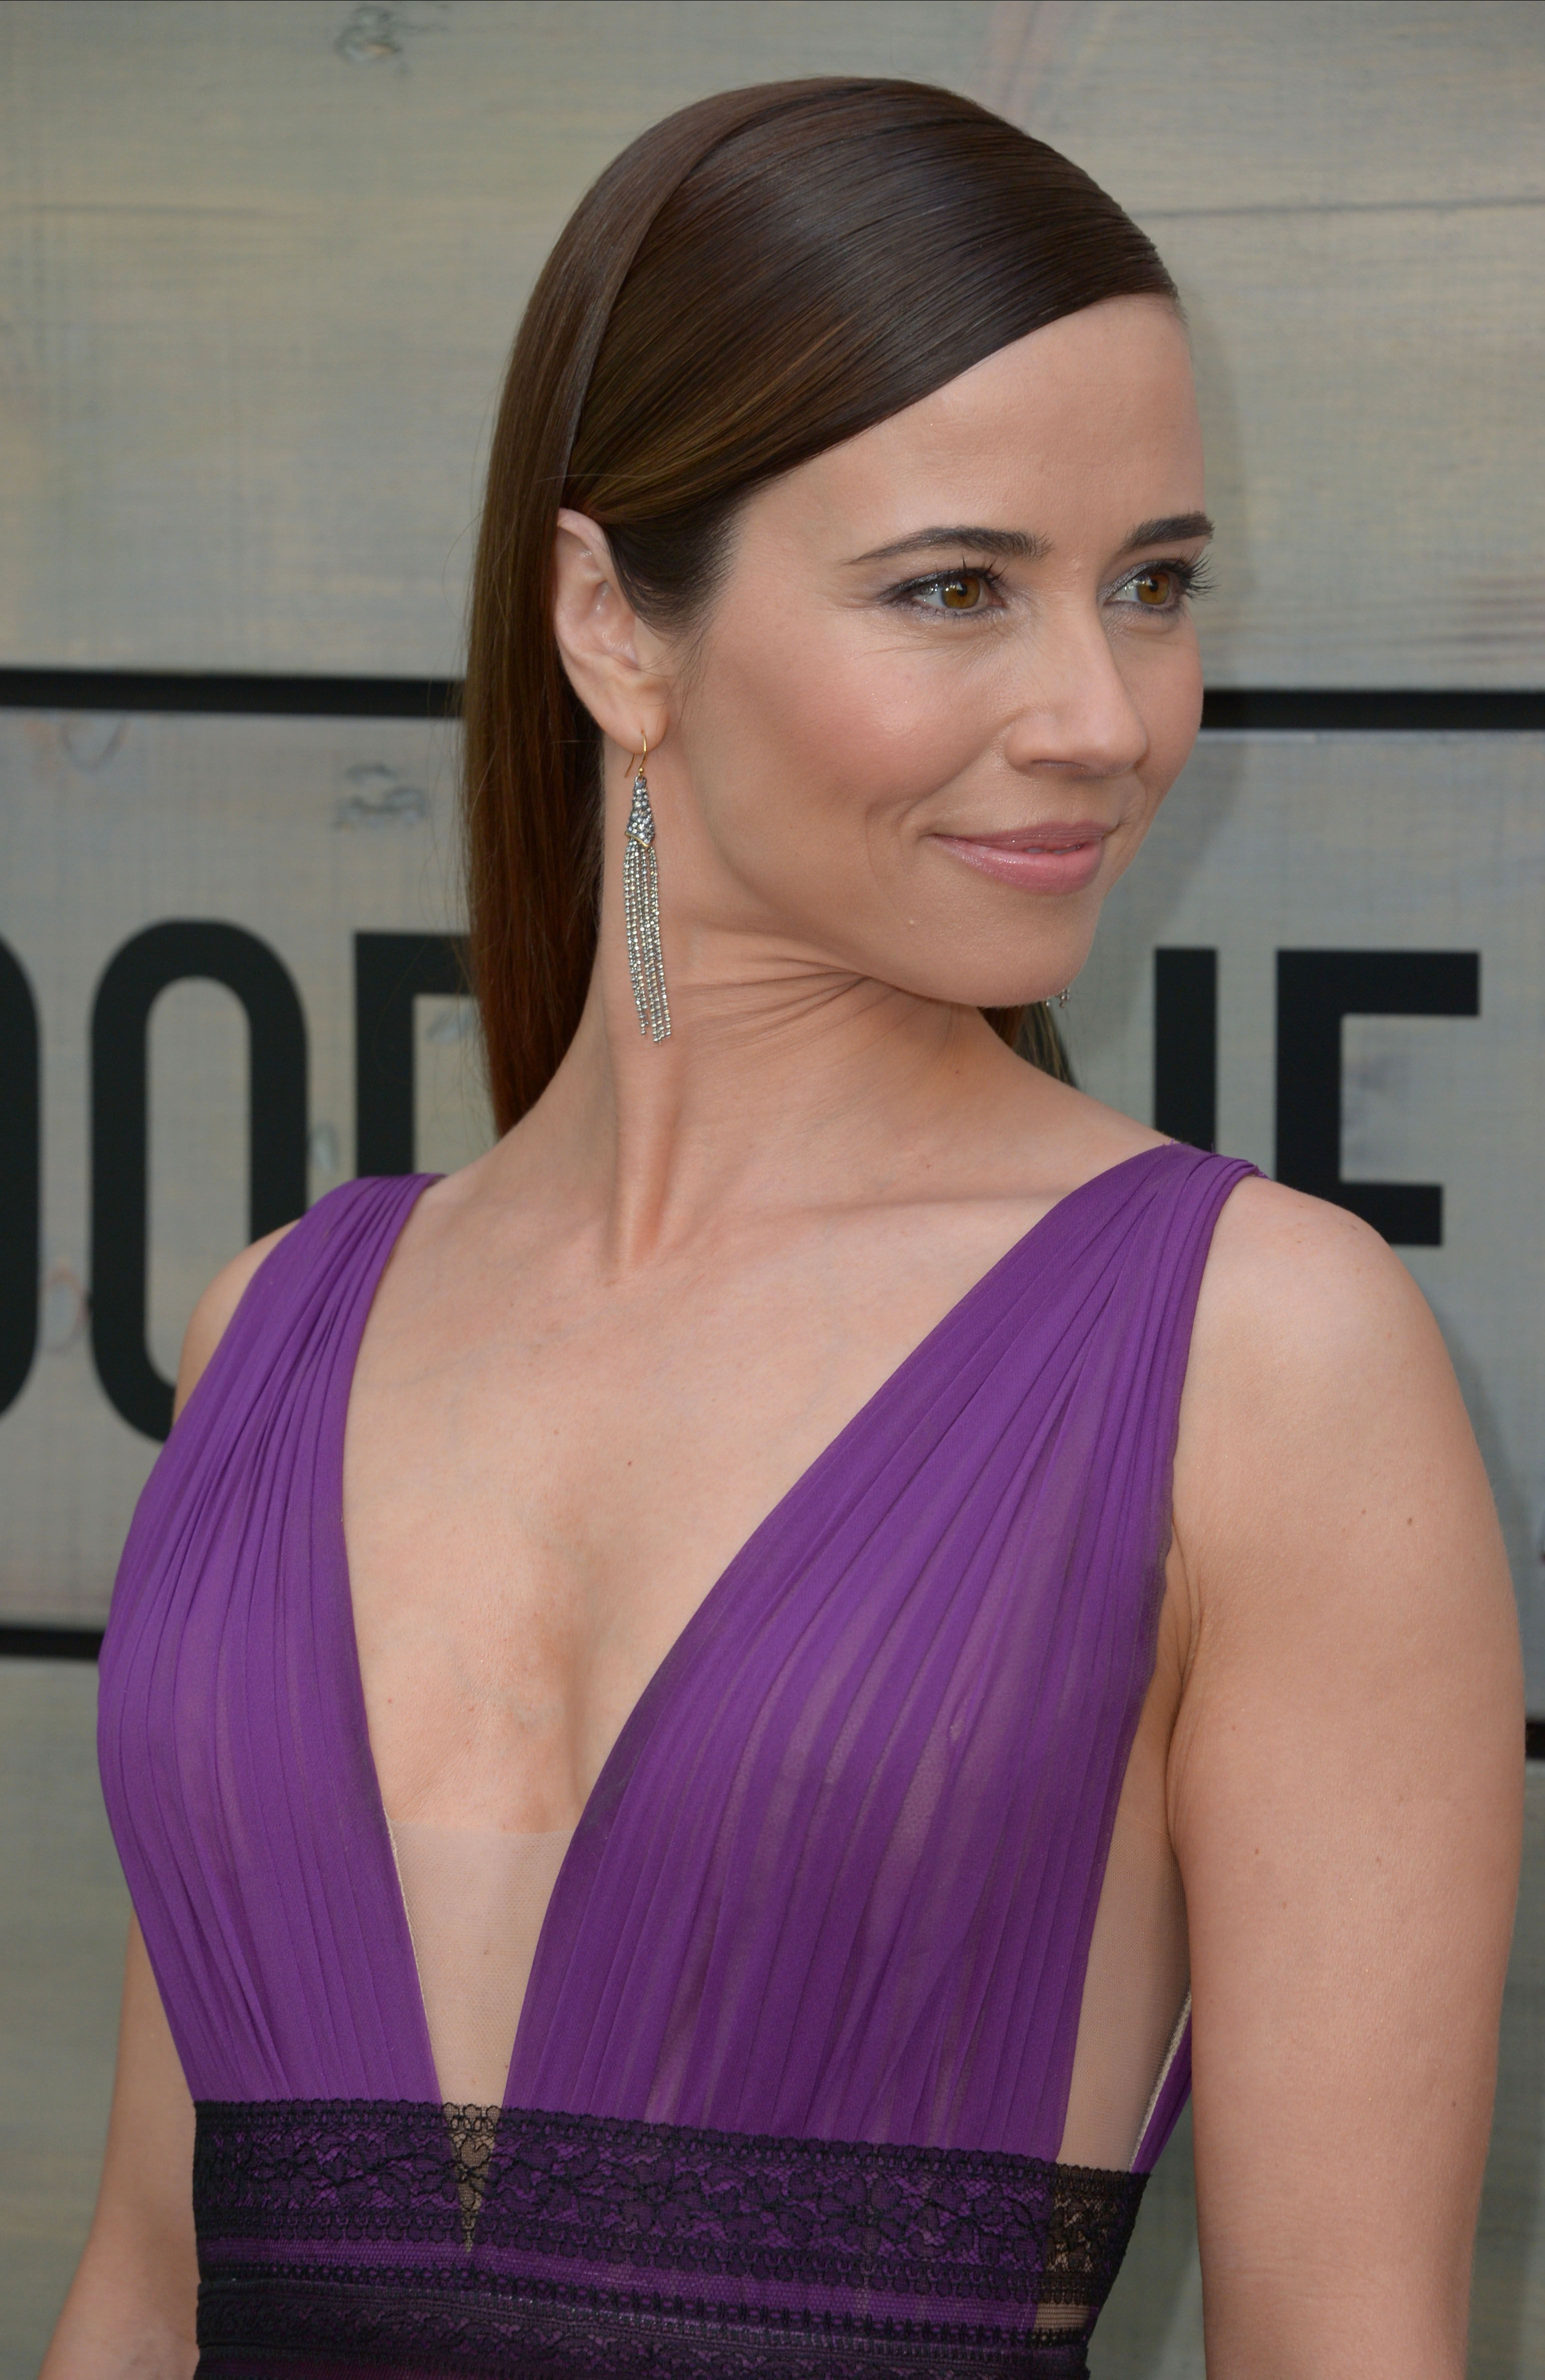 Cleavage Linda Cardellini nudes (63 photos), Topless, Sideboobs, Instagram, cameltoe 2019